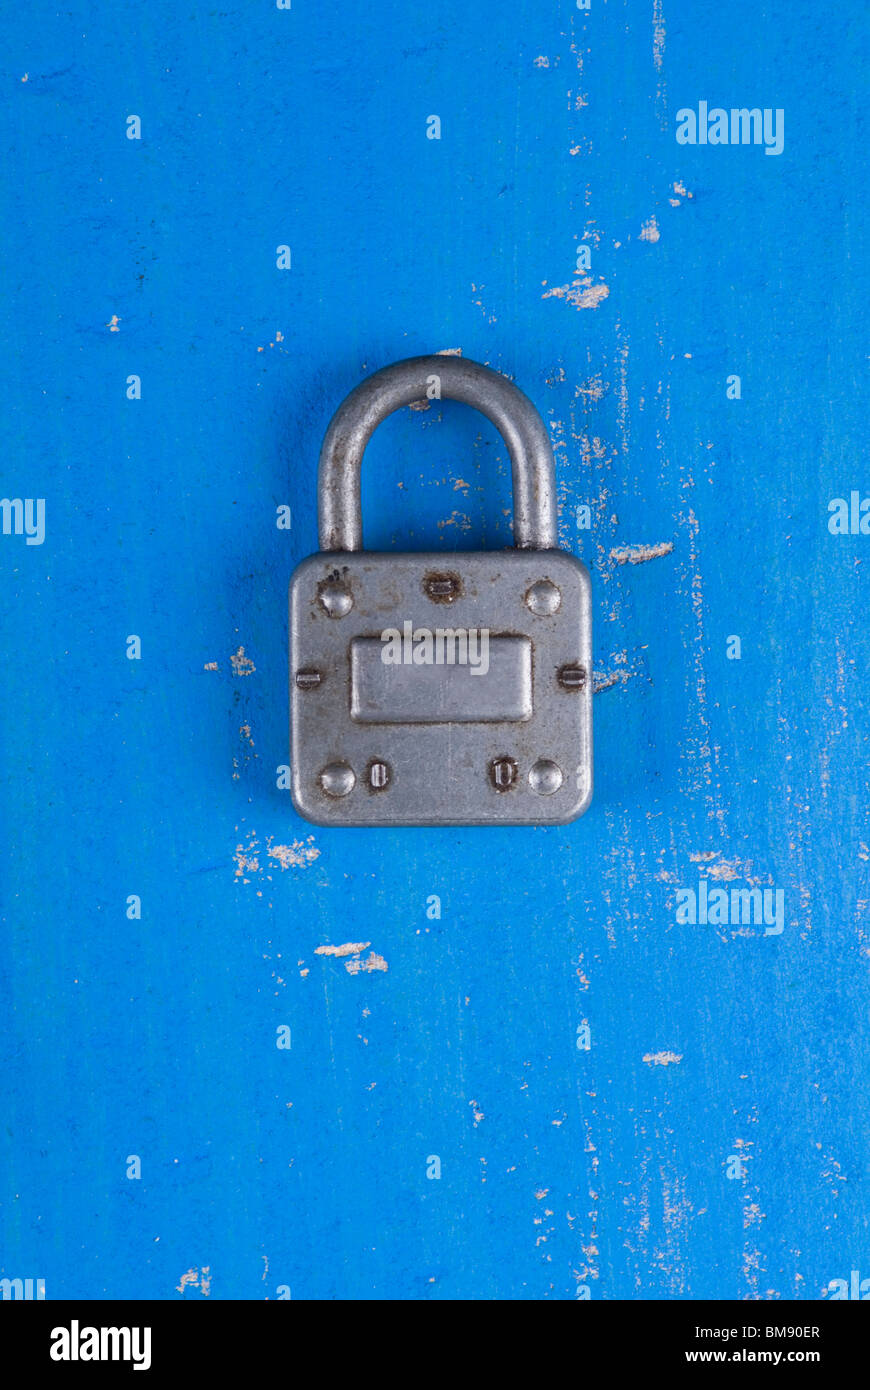 Old fashion silver padlock on a textured blue wooden background - Stock Image